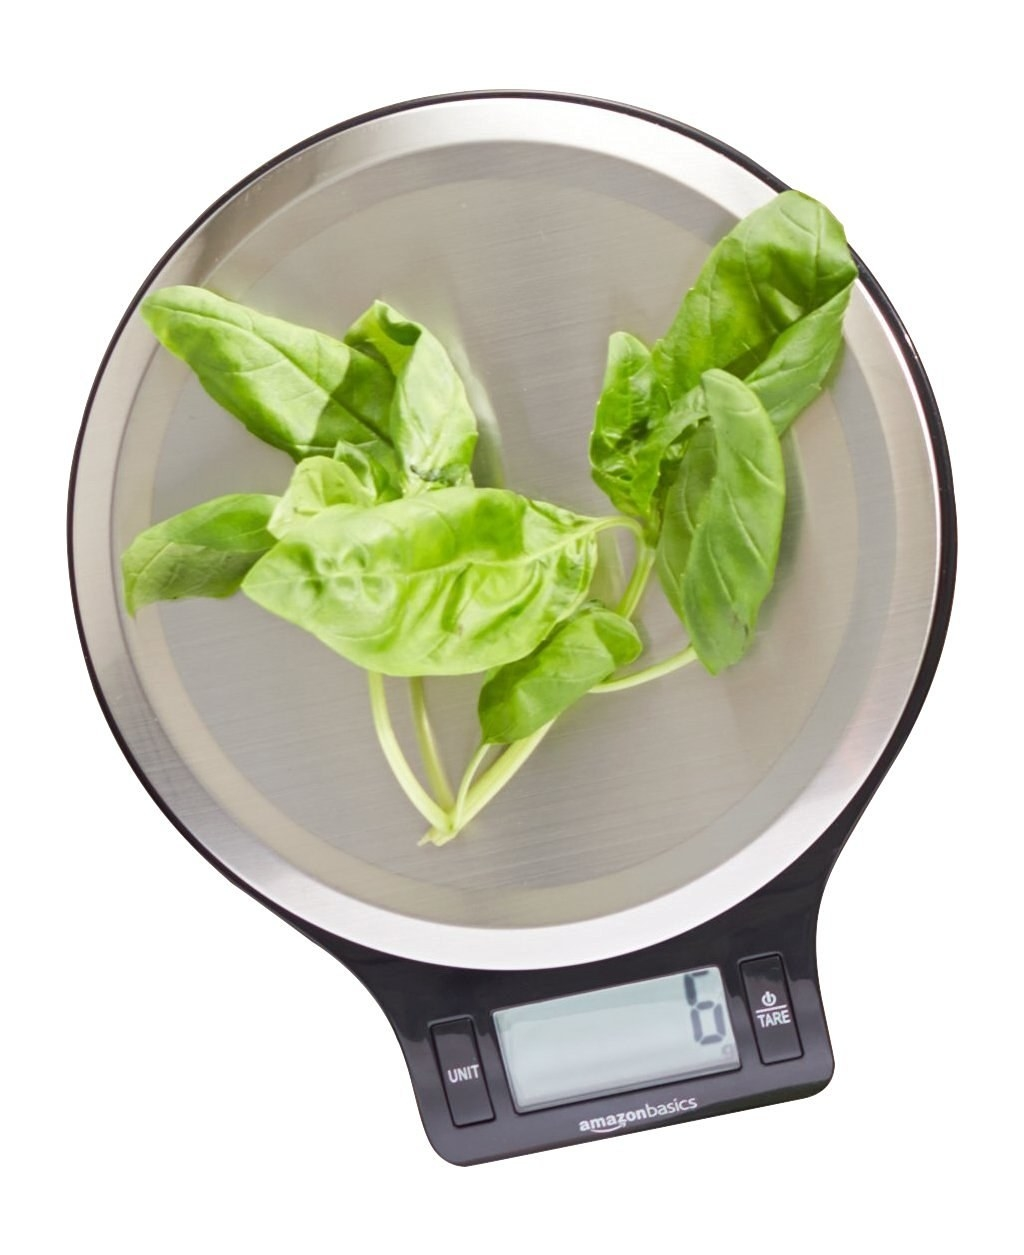 27 holy grail kitchen gadgets that live up to the hype for How much is a kitchen scale